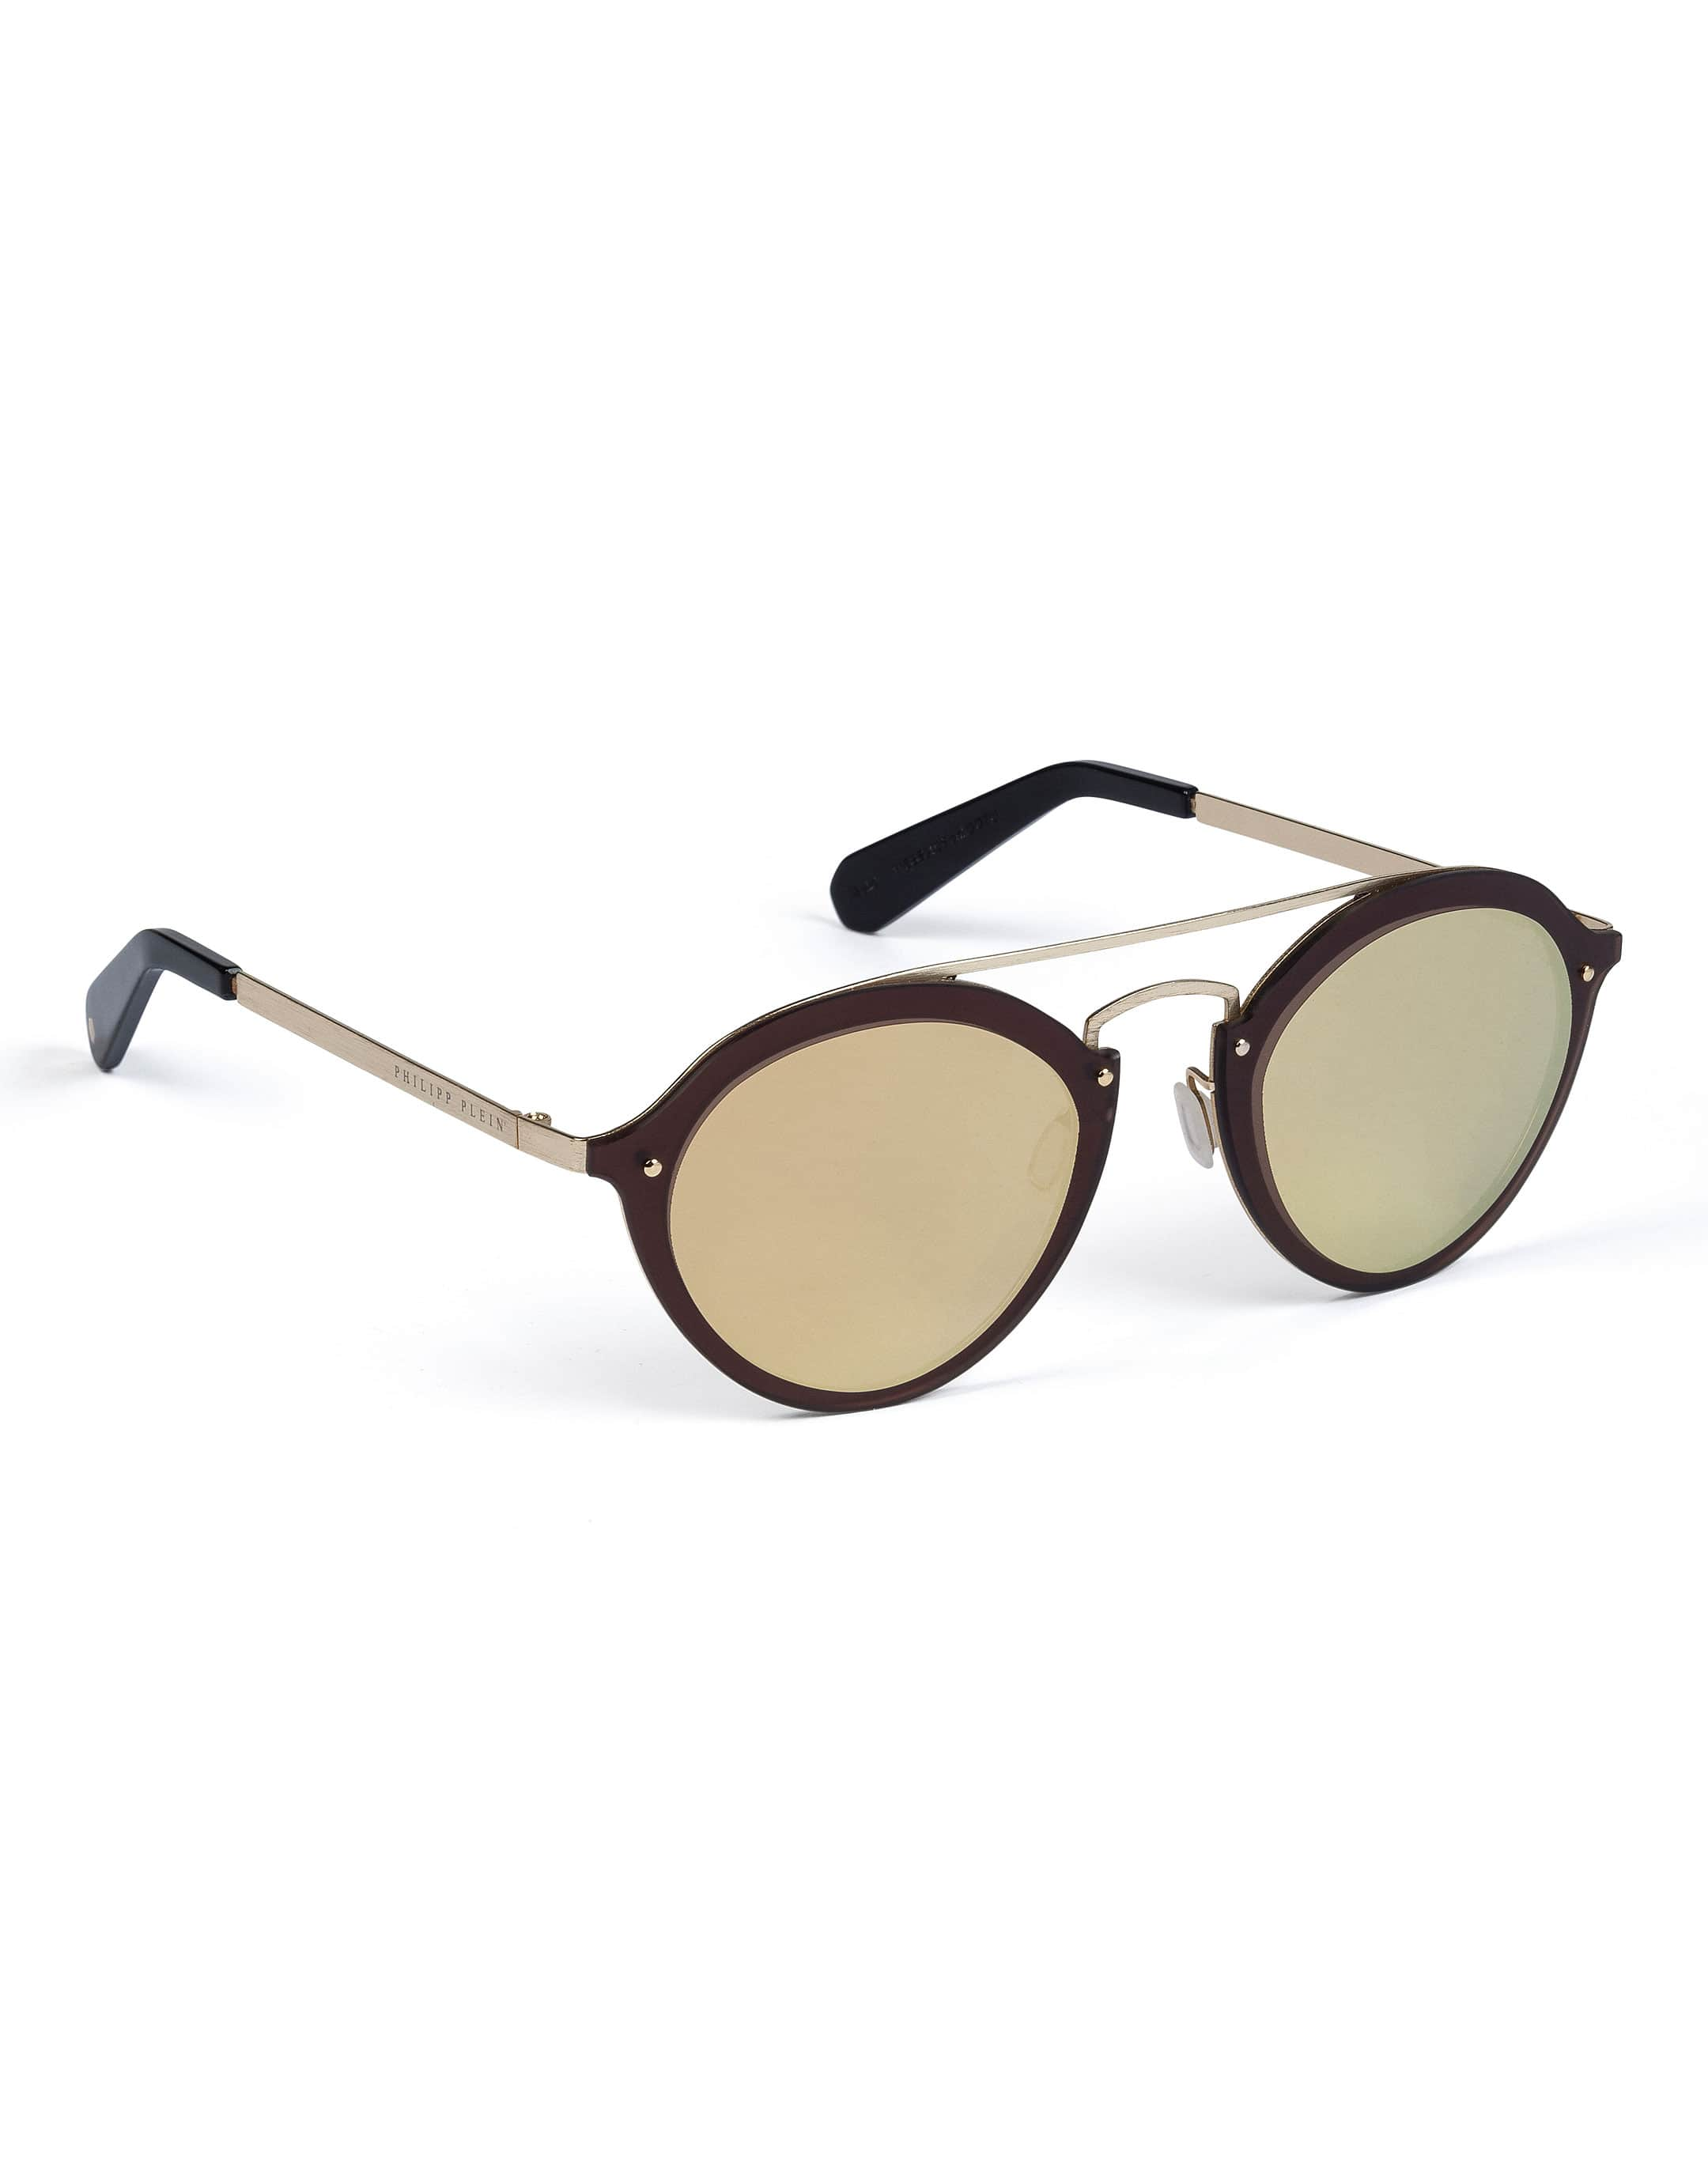 d5c16ca4922 Sunglasses